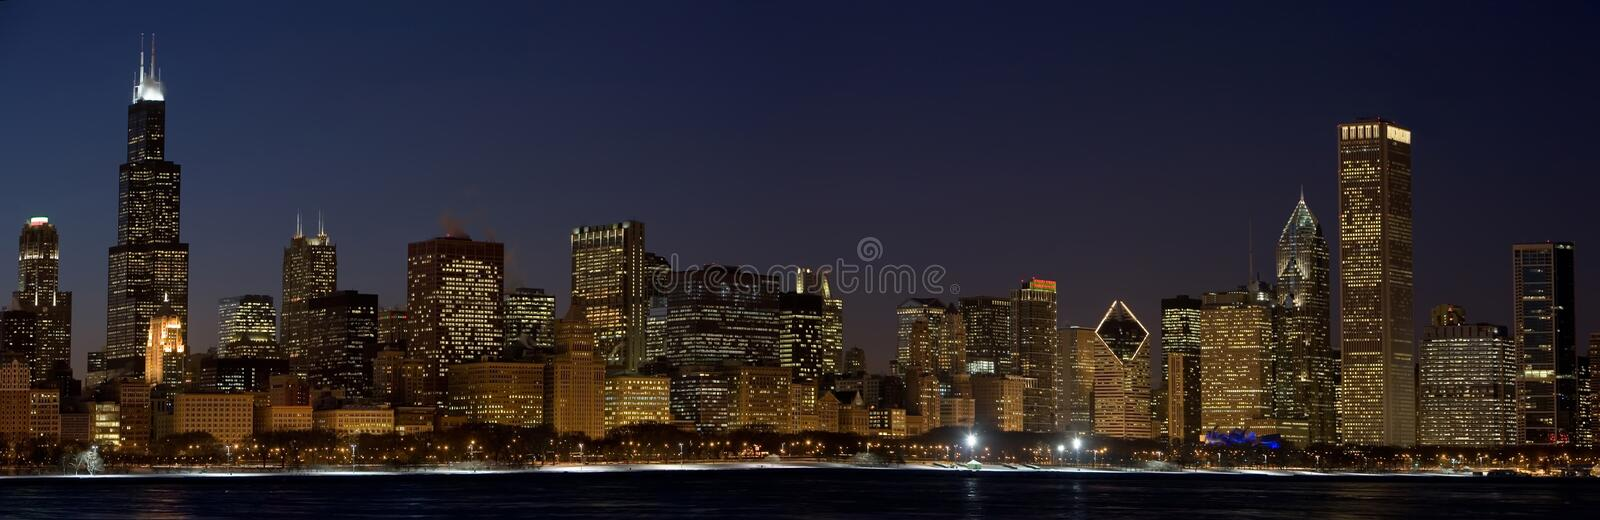 Chicago nachts stockfotografie